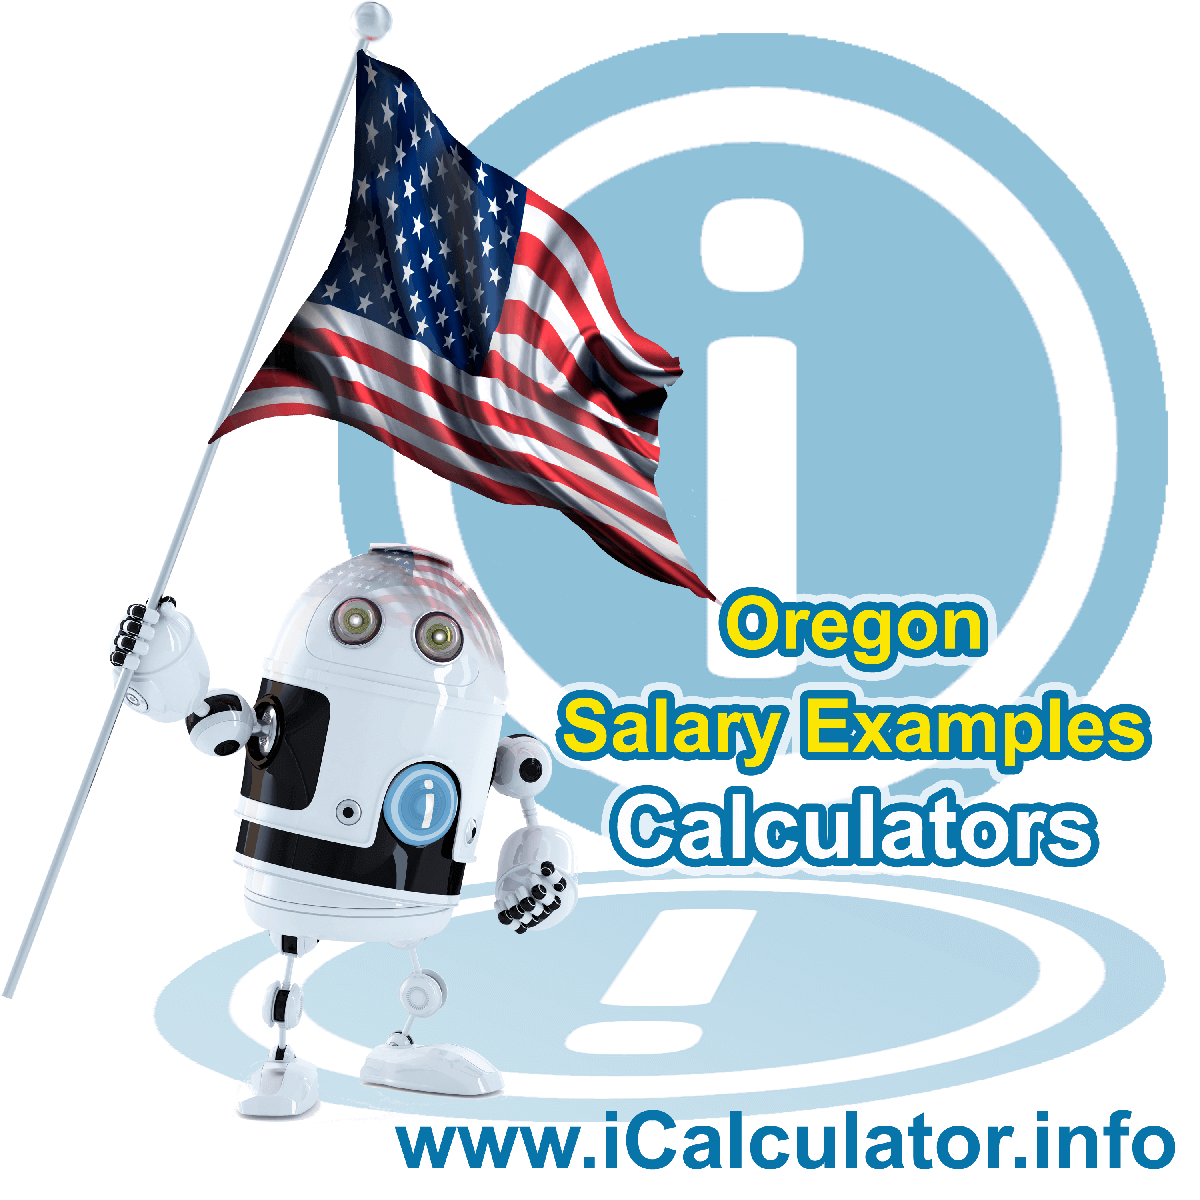 Oregon Salary Example for $30,000.00 in 2020 | iCalculator | $30,000.00 salary example for employee and employer paying Oregon State tincome taxes. Detailed salary after tax calculation including Oregon State Tax, Federal State Tax, Medicare Deductions, Social Security, Capital Gains and other income tax and salary deductions complete with supporting Oregon state tax tables